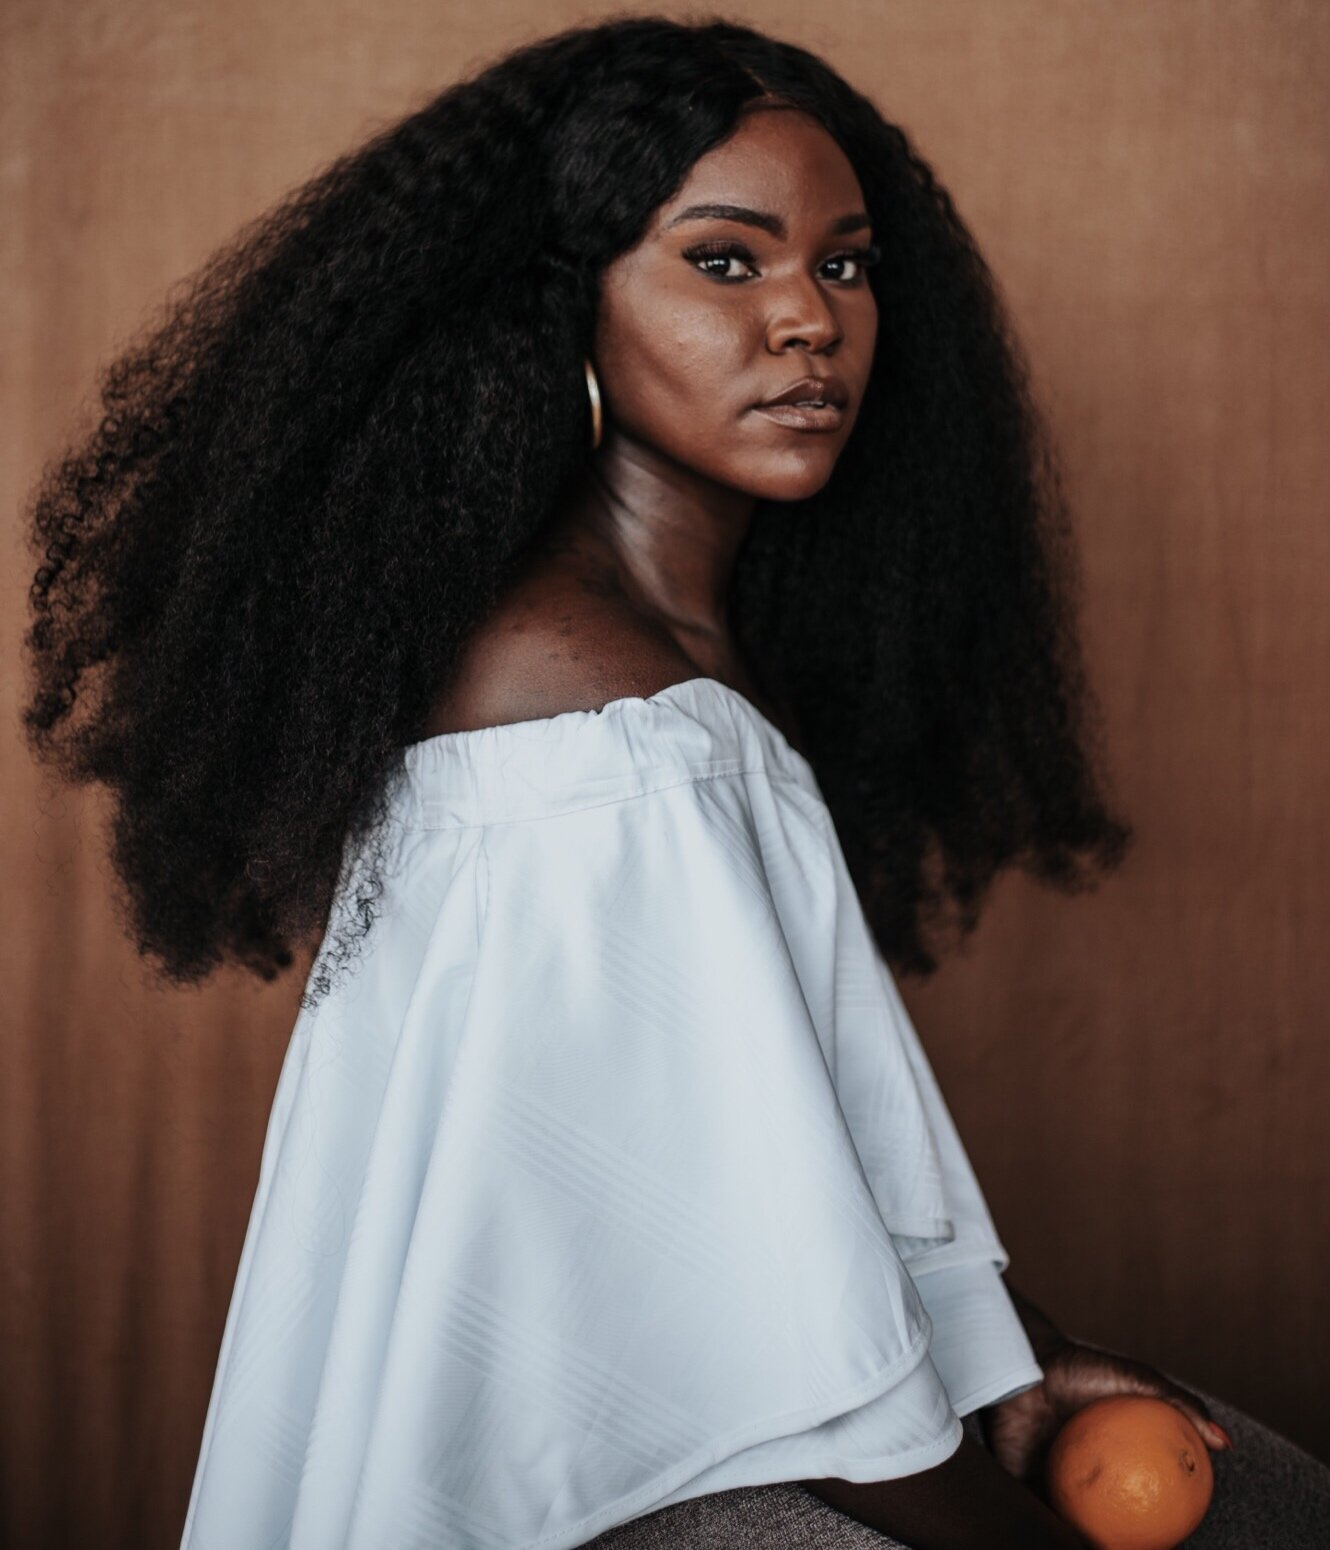 BESIDA BY SOPHIA DANNER-OKOTIE - Designer Sophia Danner-Okotie launched Besida as a salute to her Nigerian heritage coupled with modern designs she envisions. Her eco-friendly workshops are based in Nigeria and provide opportunities for local tailors looking to develop their craft.